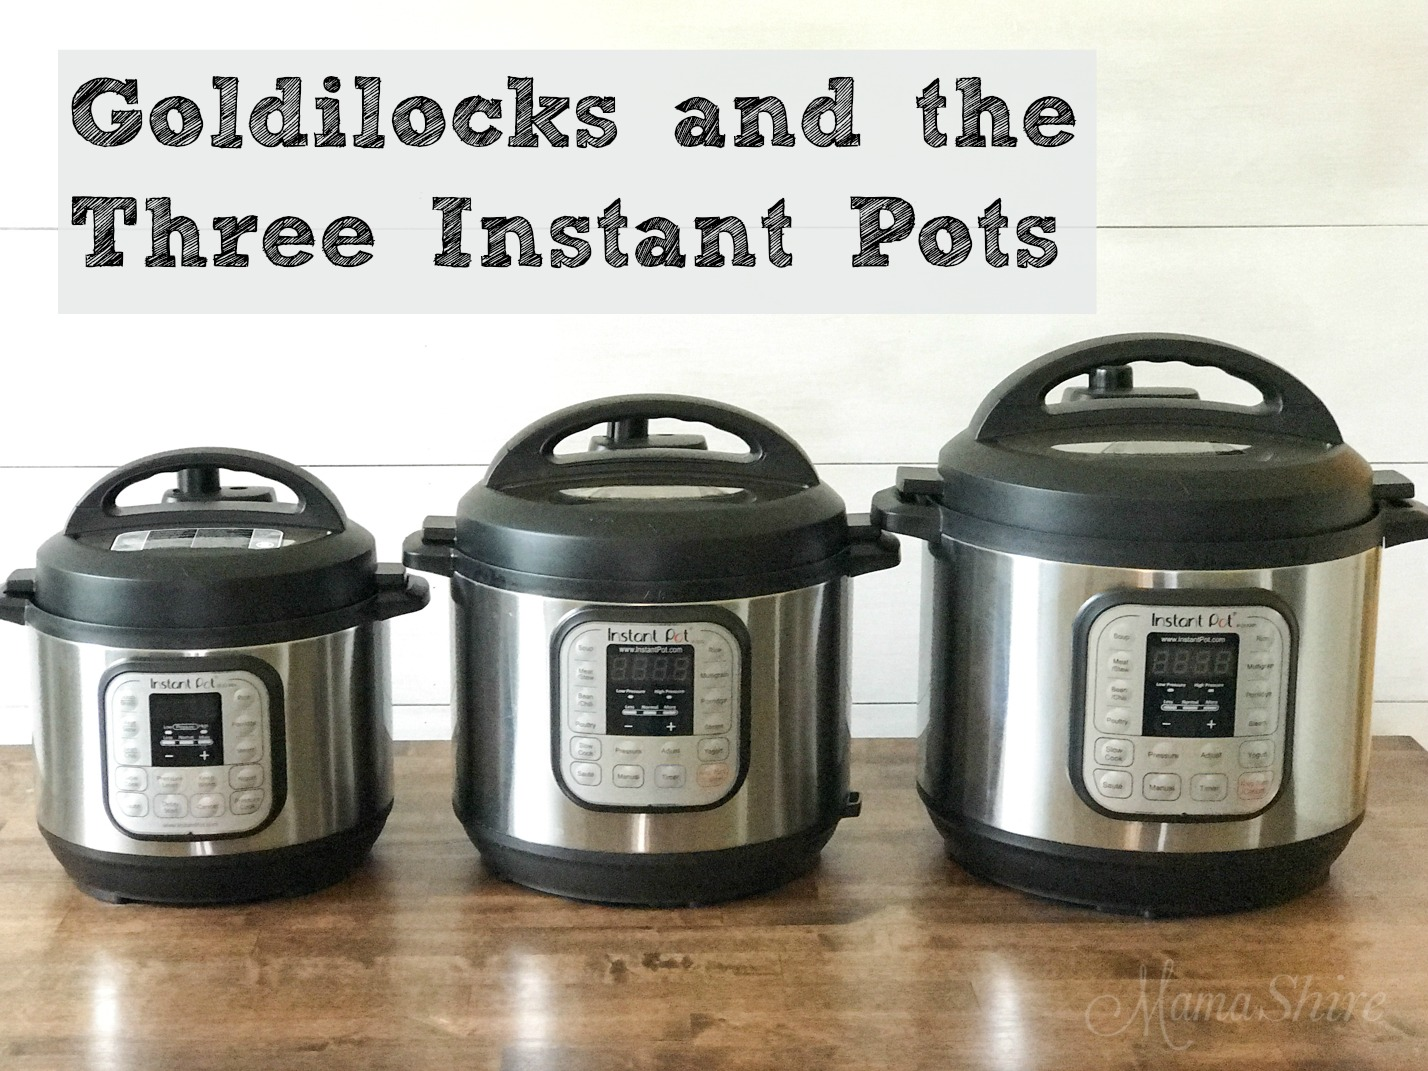 Goldilocks and the Three Instant Pots. Comparing three different sizes - 8 qt., 6 qt, and 3 qt of Instant Pots. Which one is just right for you?